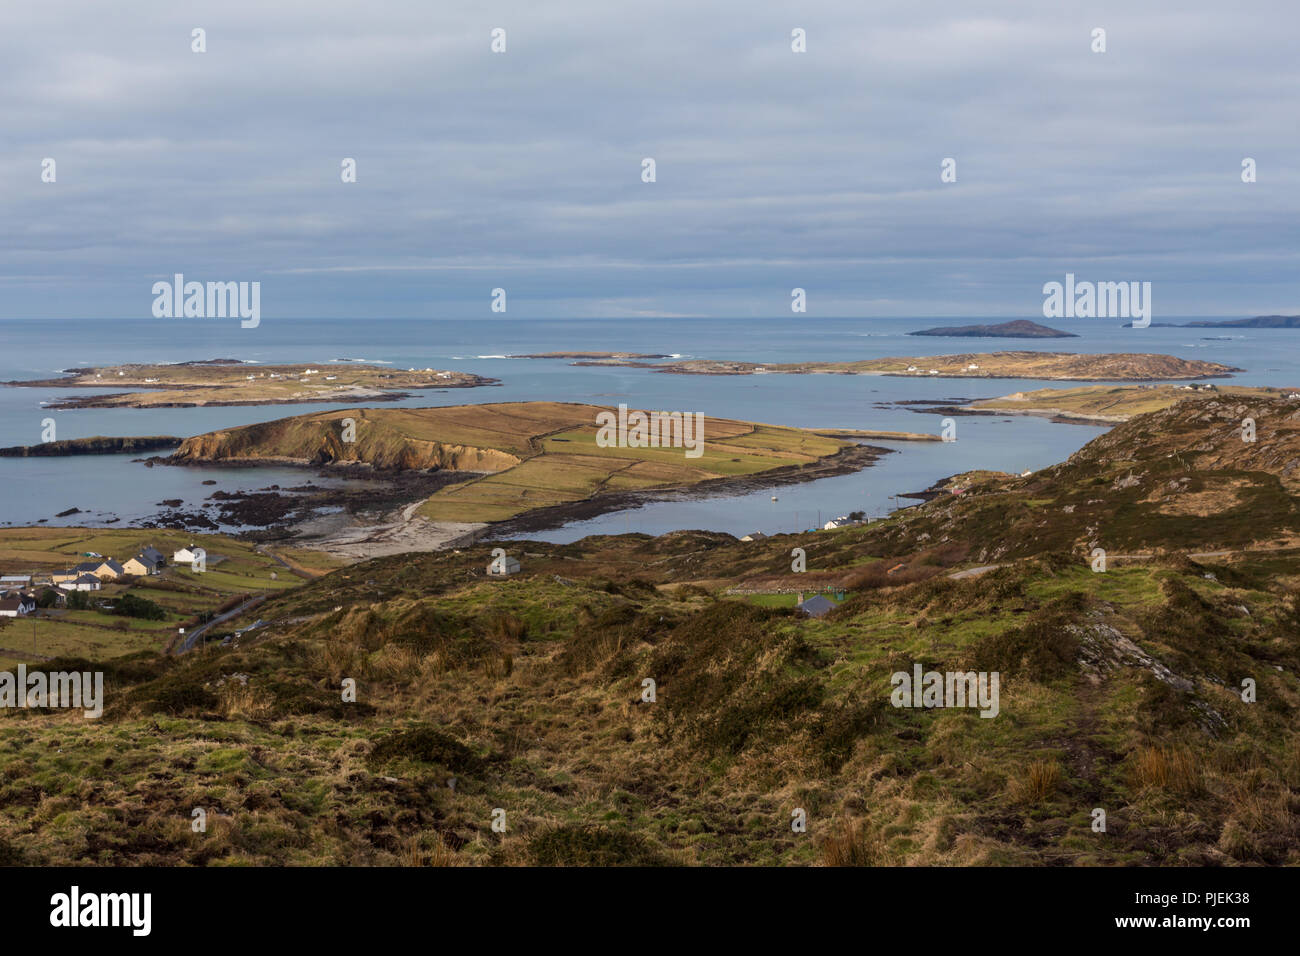 Islands on west coast of Ireland in Atlantic Ocean as viewed from Sky Road, Clifden, Connemara, County Galway, Ireland. - Stock Image